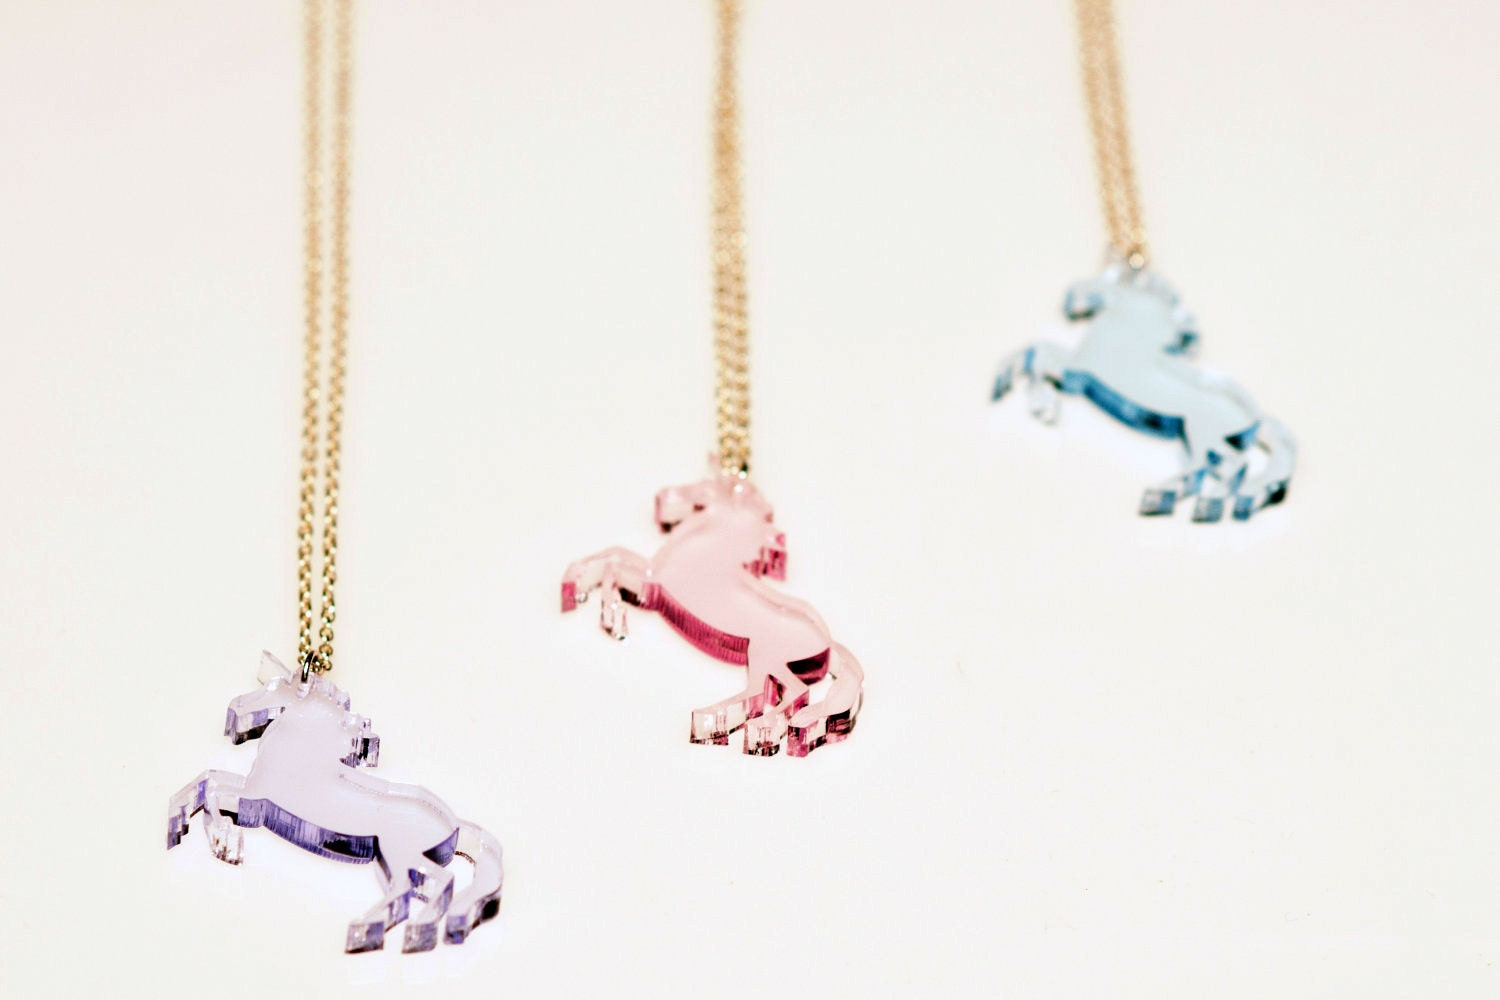 online at john pdp unicorn johnlewis com bartlett rose rsp pendant main estella lewis gold necklace buyestella